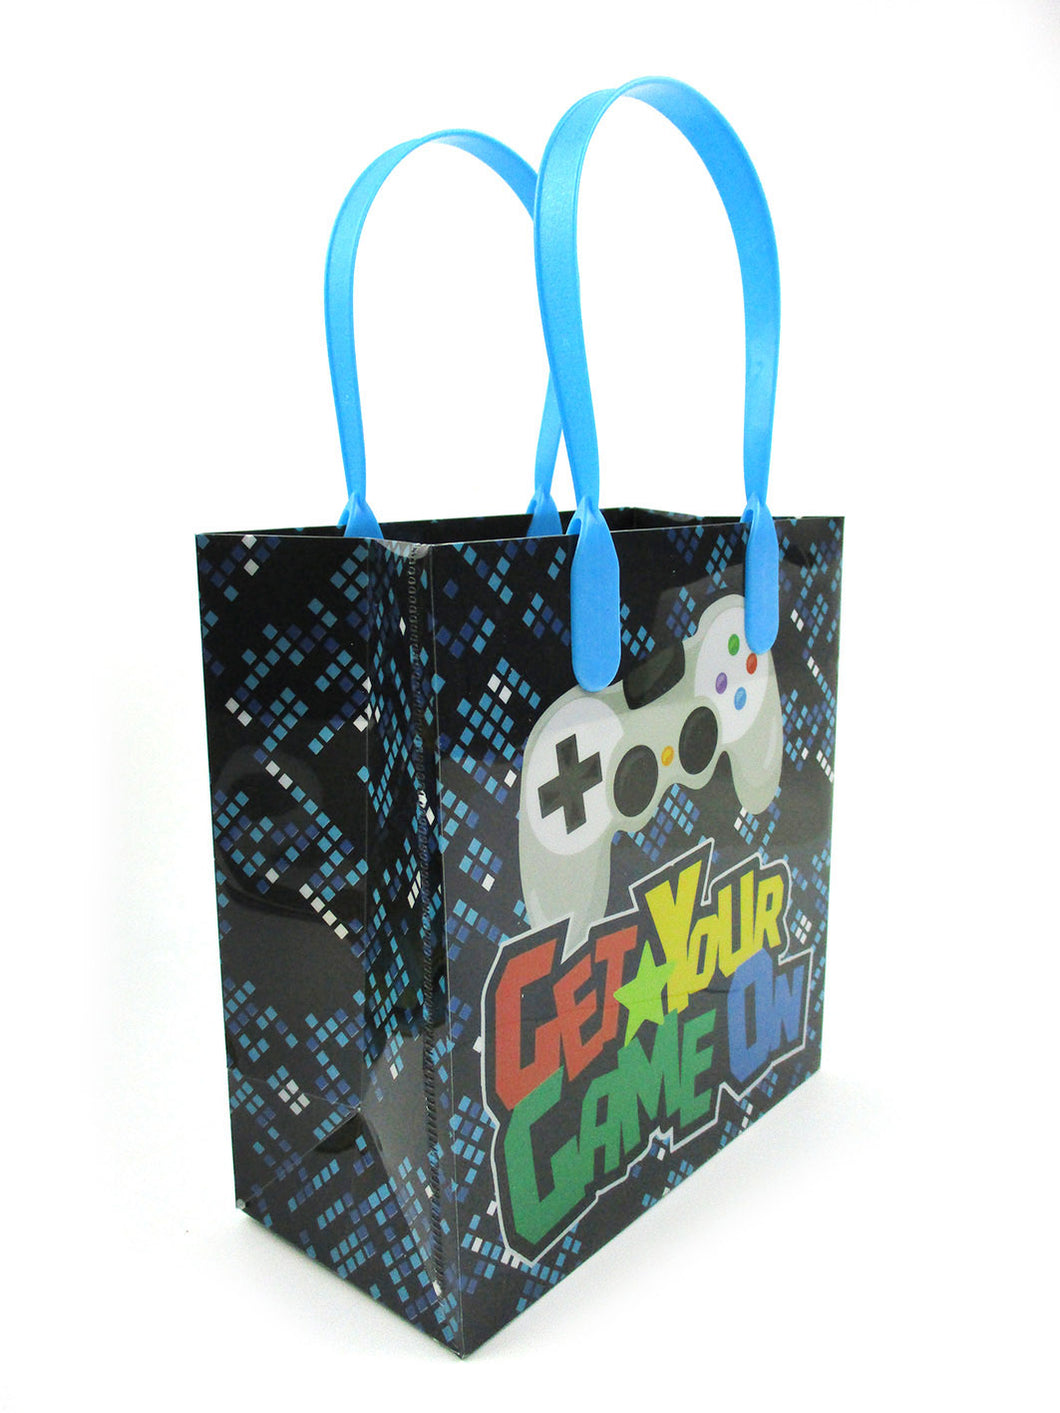 Video Game Themed Party Favor Bags Treat Bags, 12 Pack - Paper Bags | Tiny Mills®